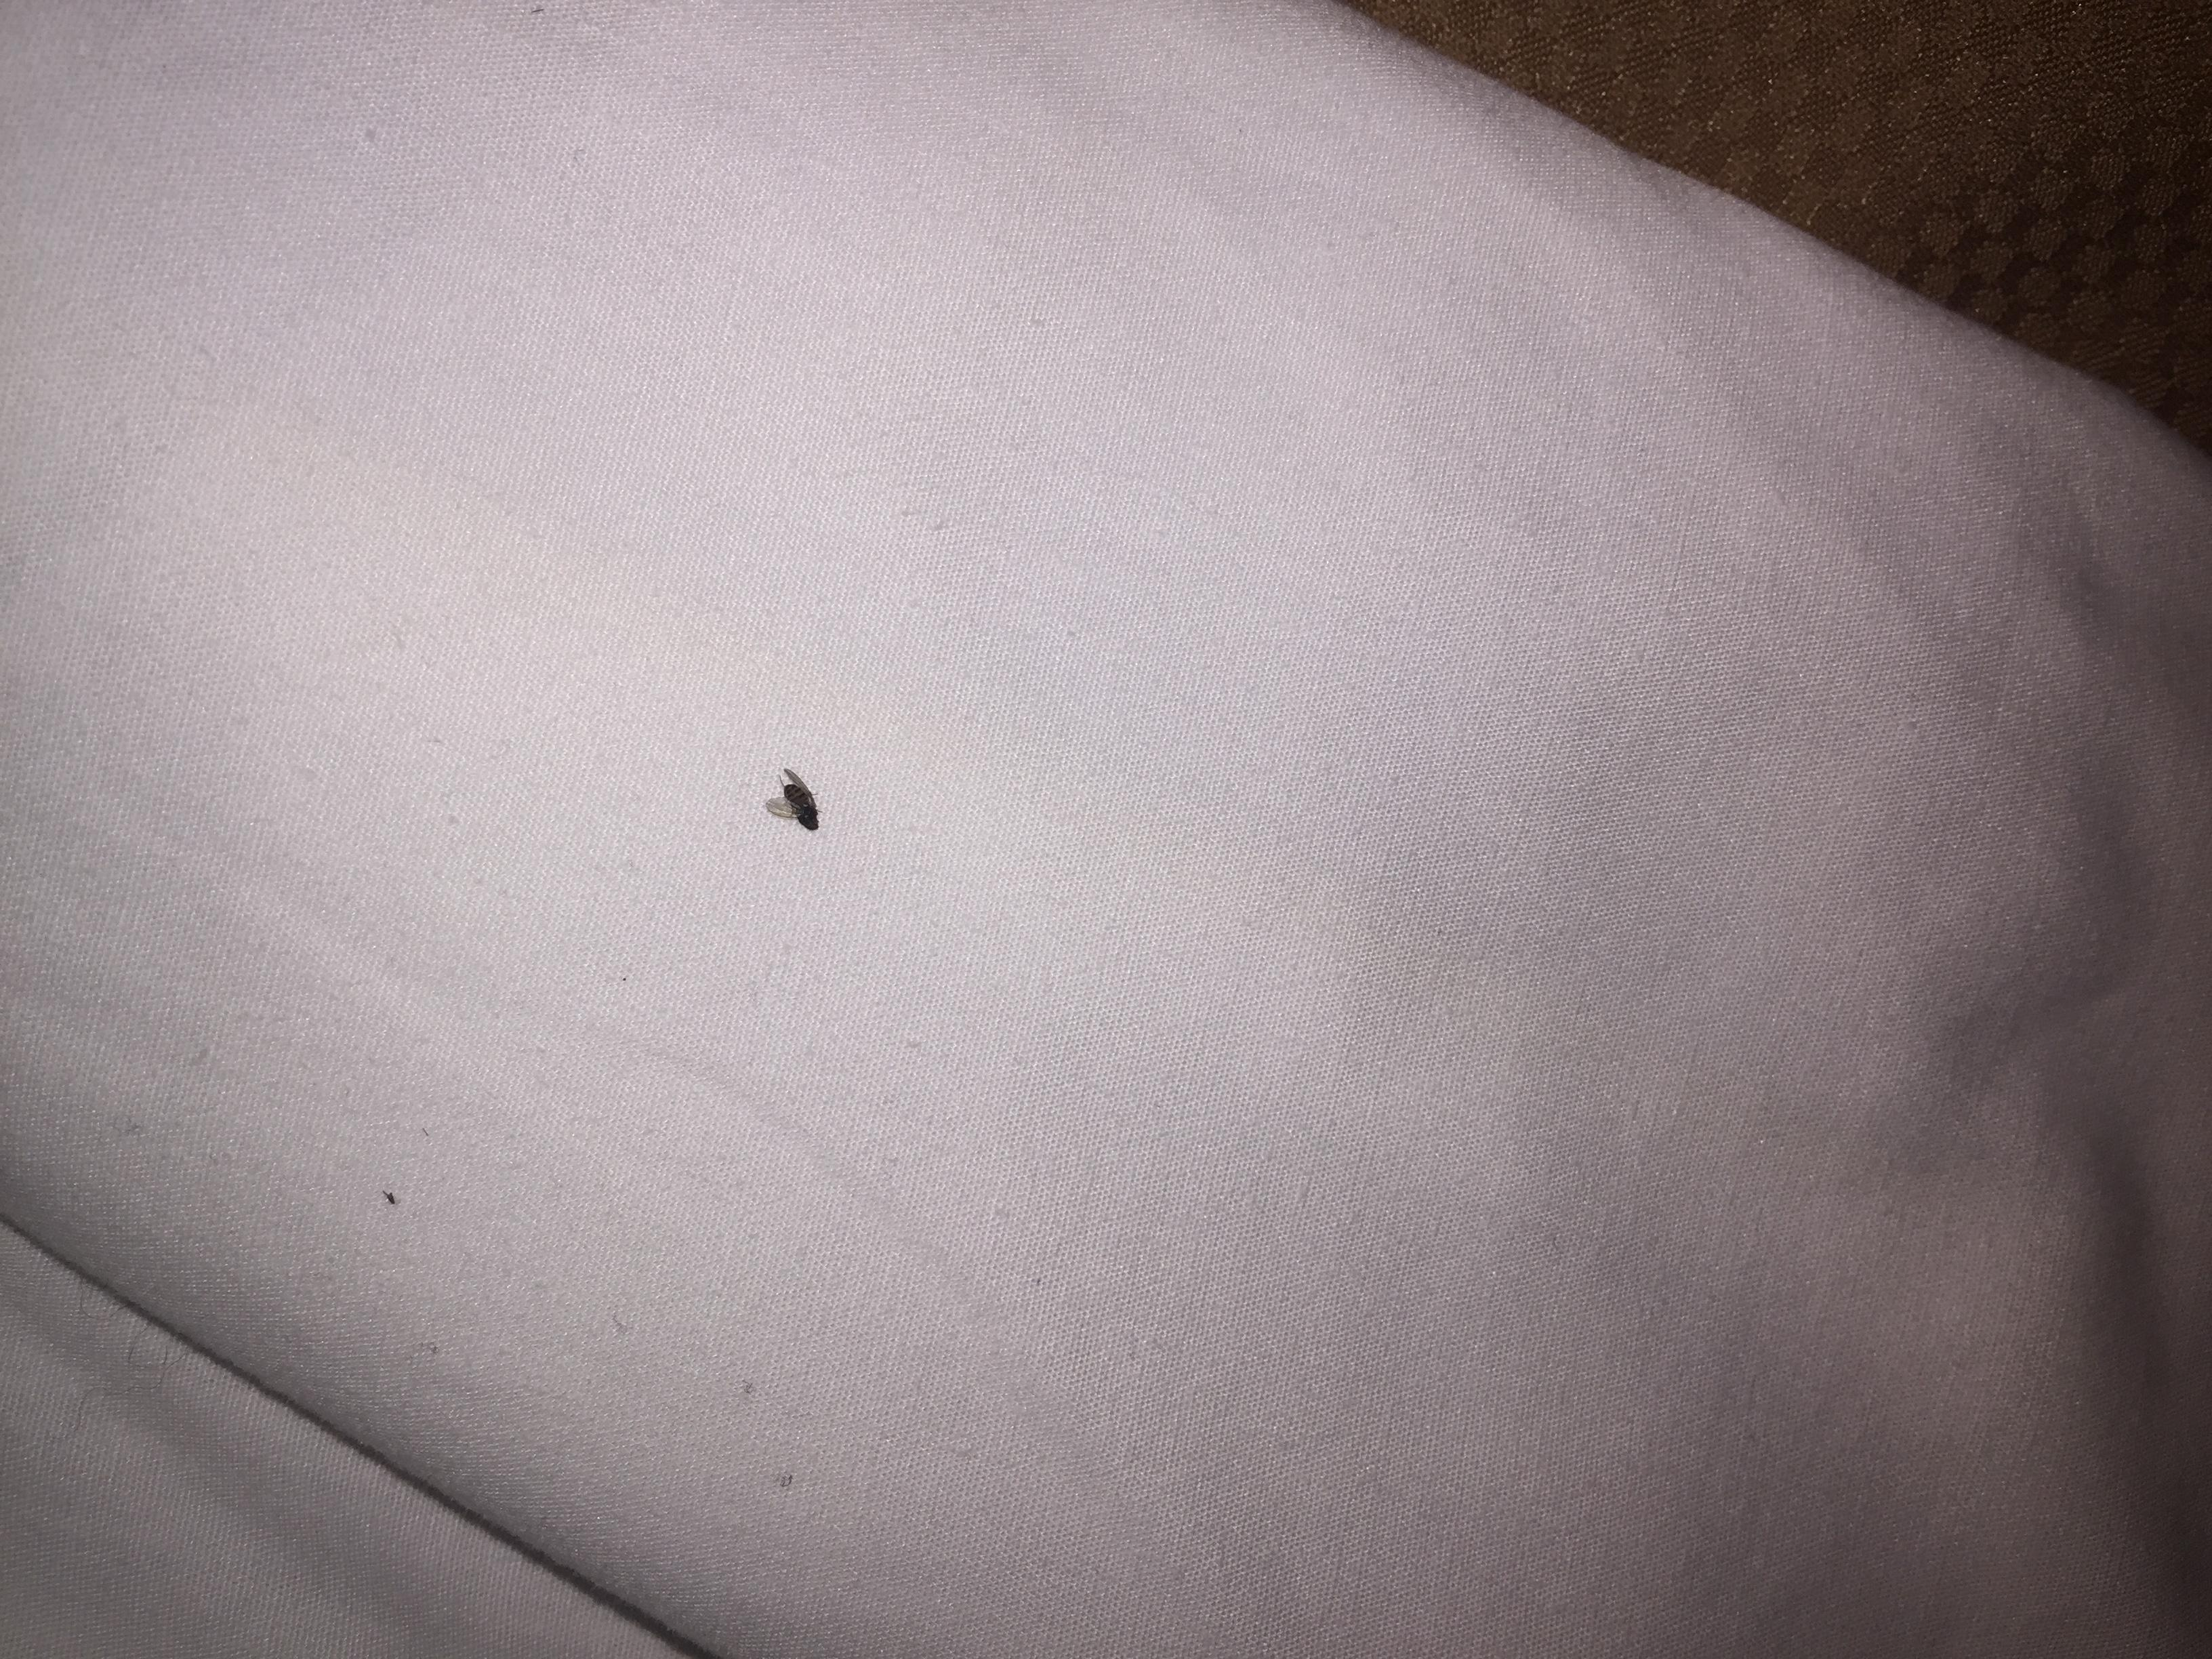 Dead Bug in the bed